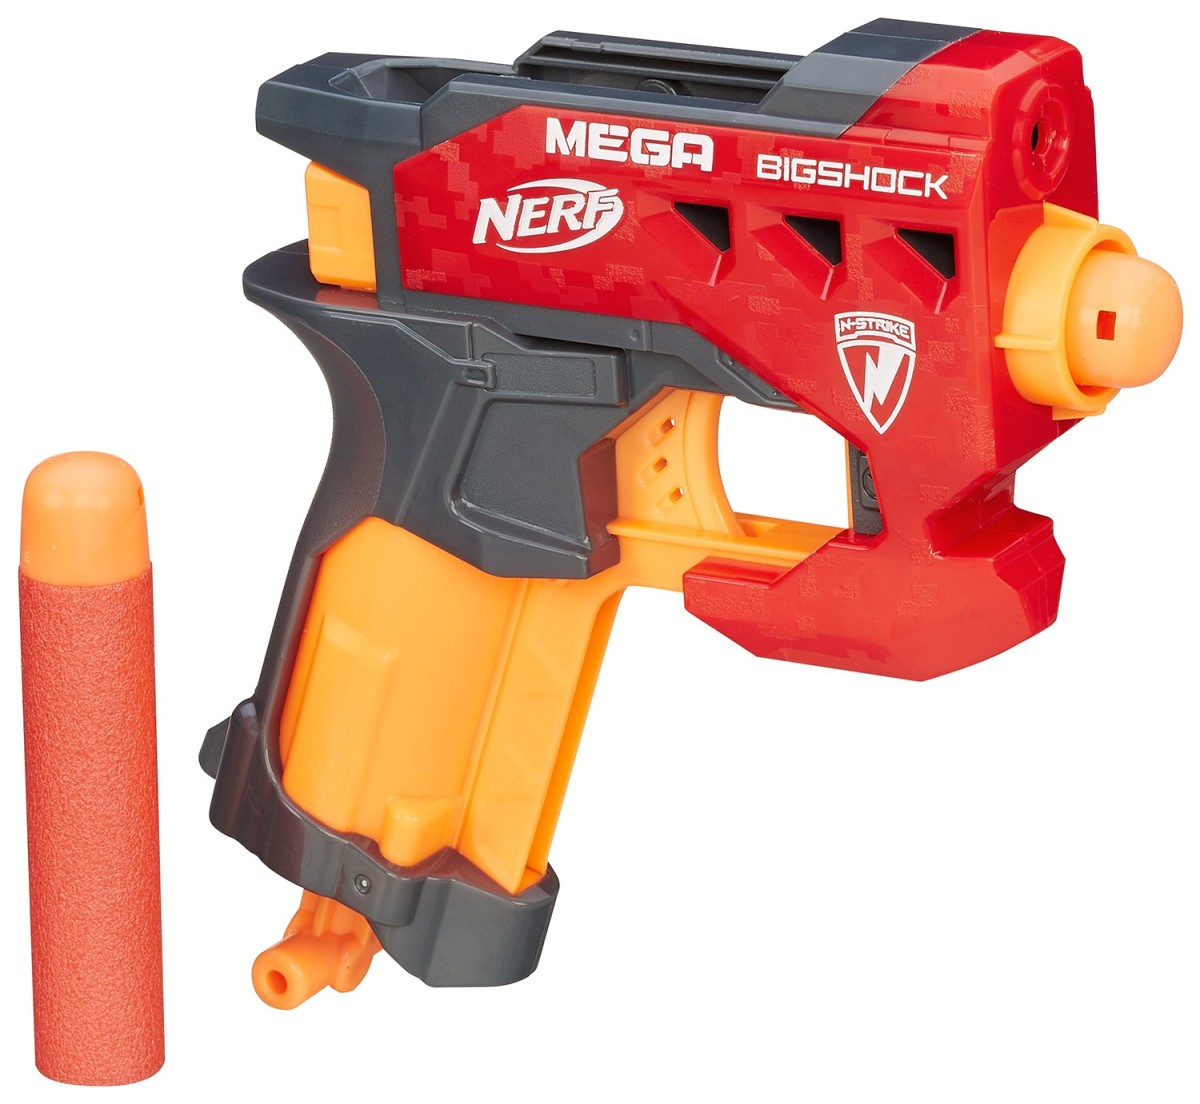 New Upcoming Nerf N-Strike Elite XD SlingShock & Mega Bigshock Listed on Bankcroft